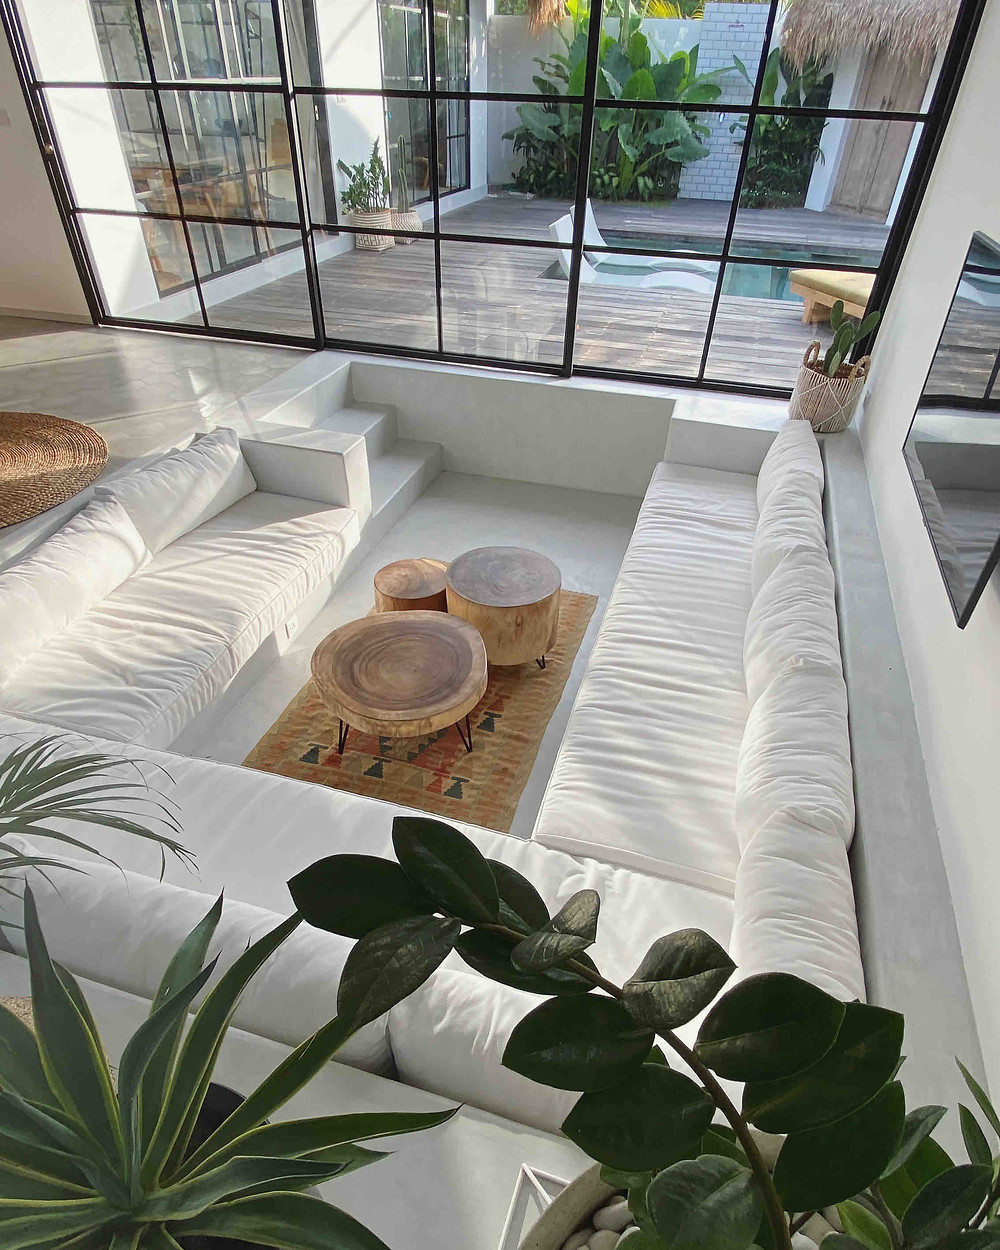 Luxurious living room interior design with huge white sectional sofa and tribal rug